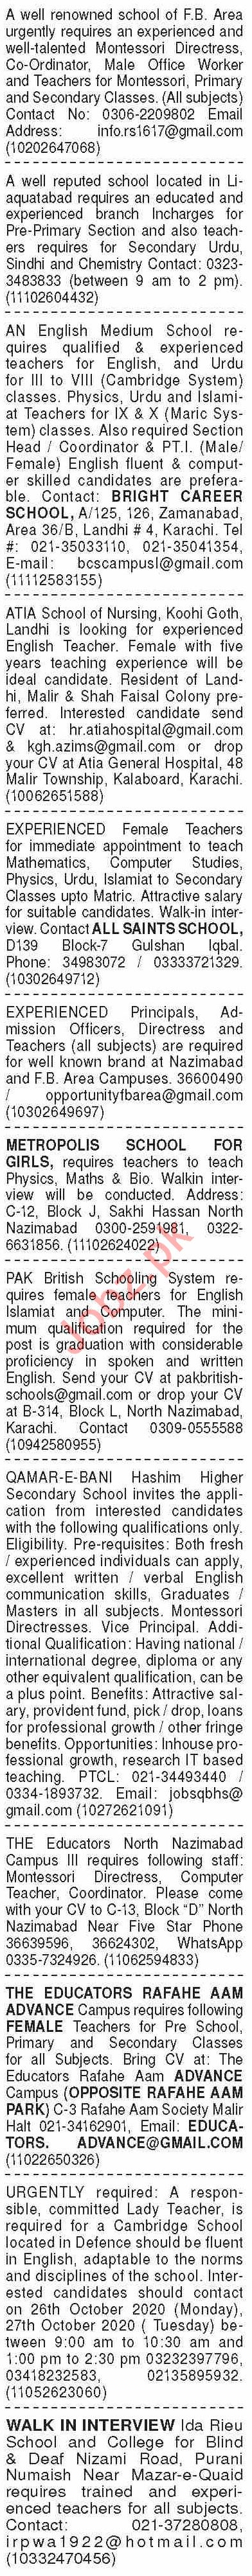 Dawn Sunday Classified Ads 25 Oct 2020 for Teaching Staff